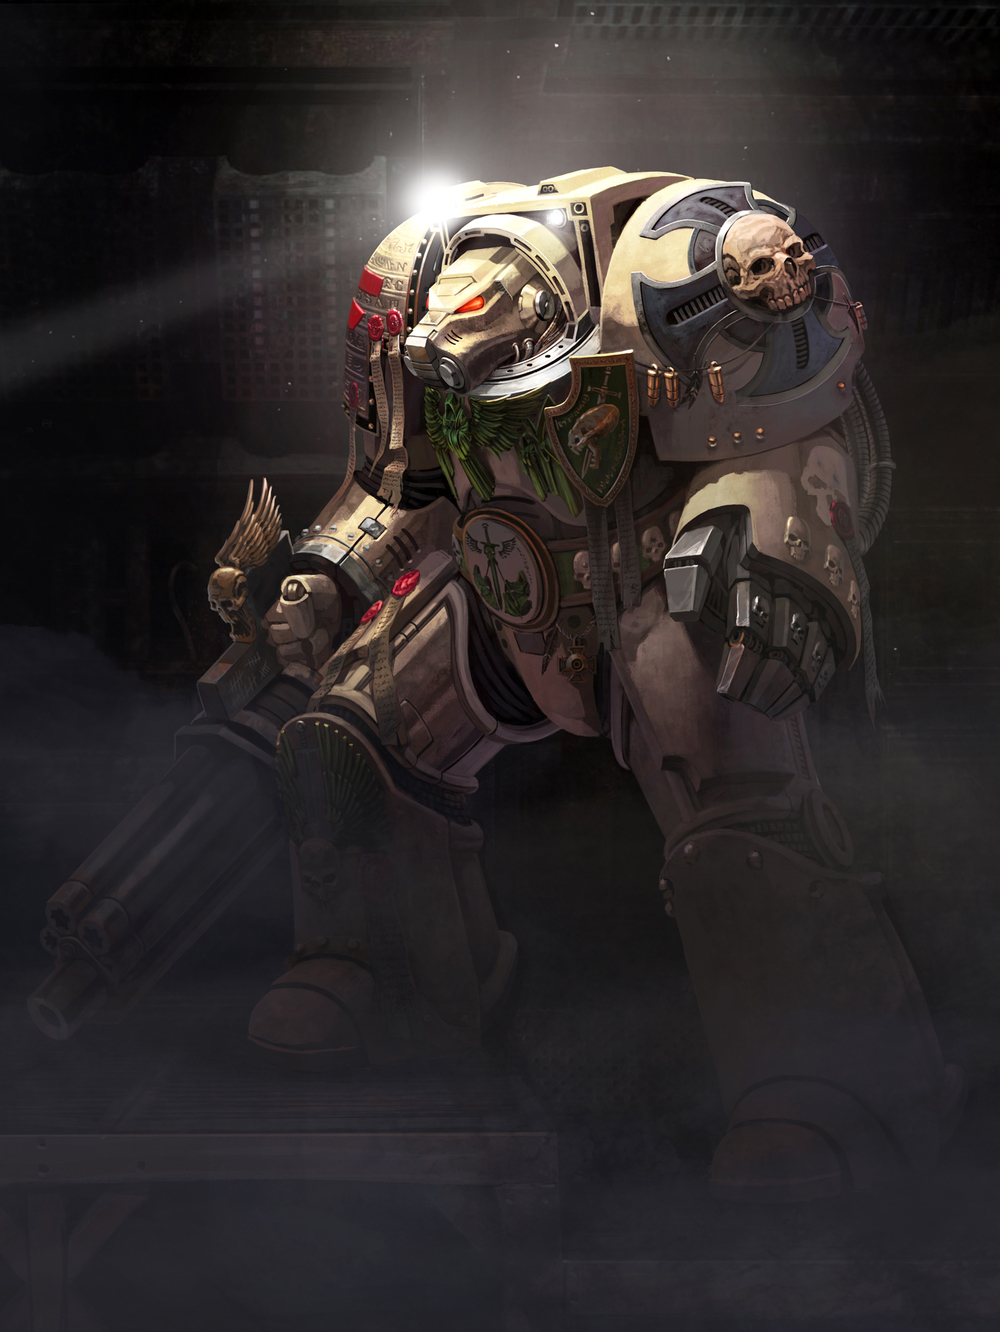 spacehulk-artwork01.jpg